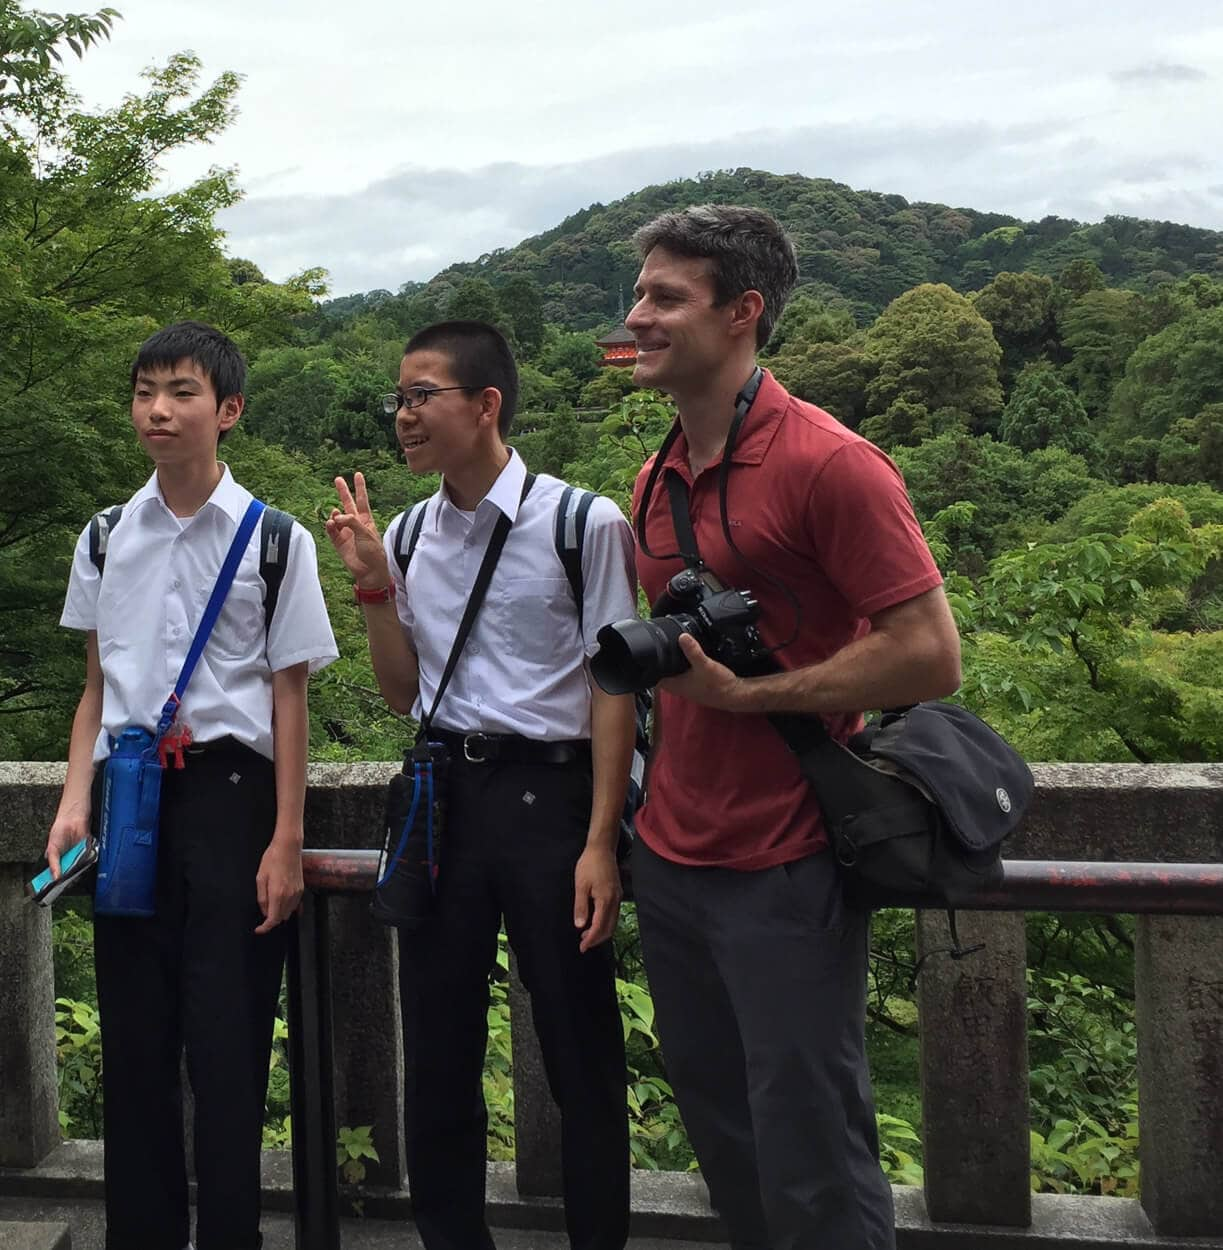 Me helping Japanese students while traveling through Japan